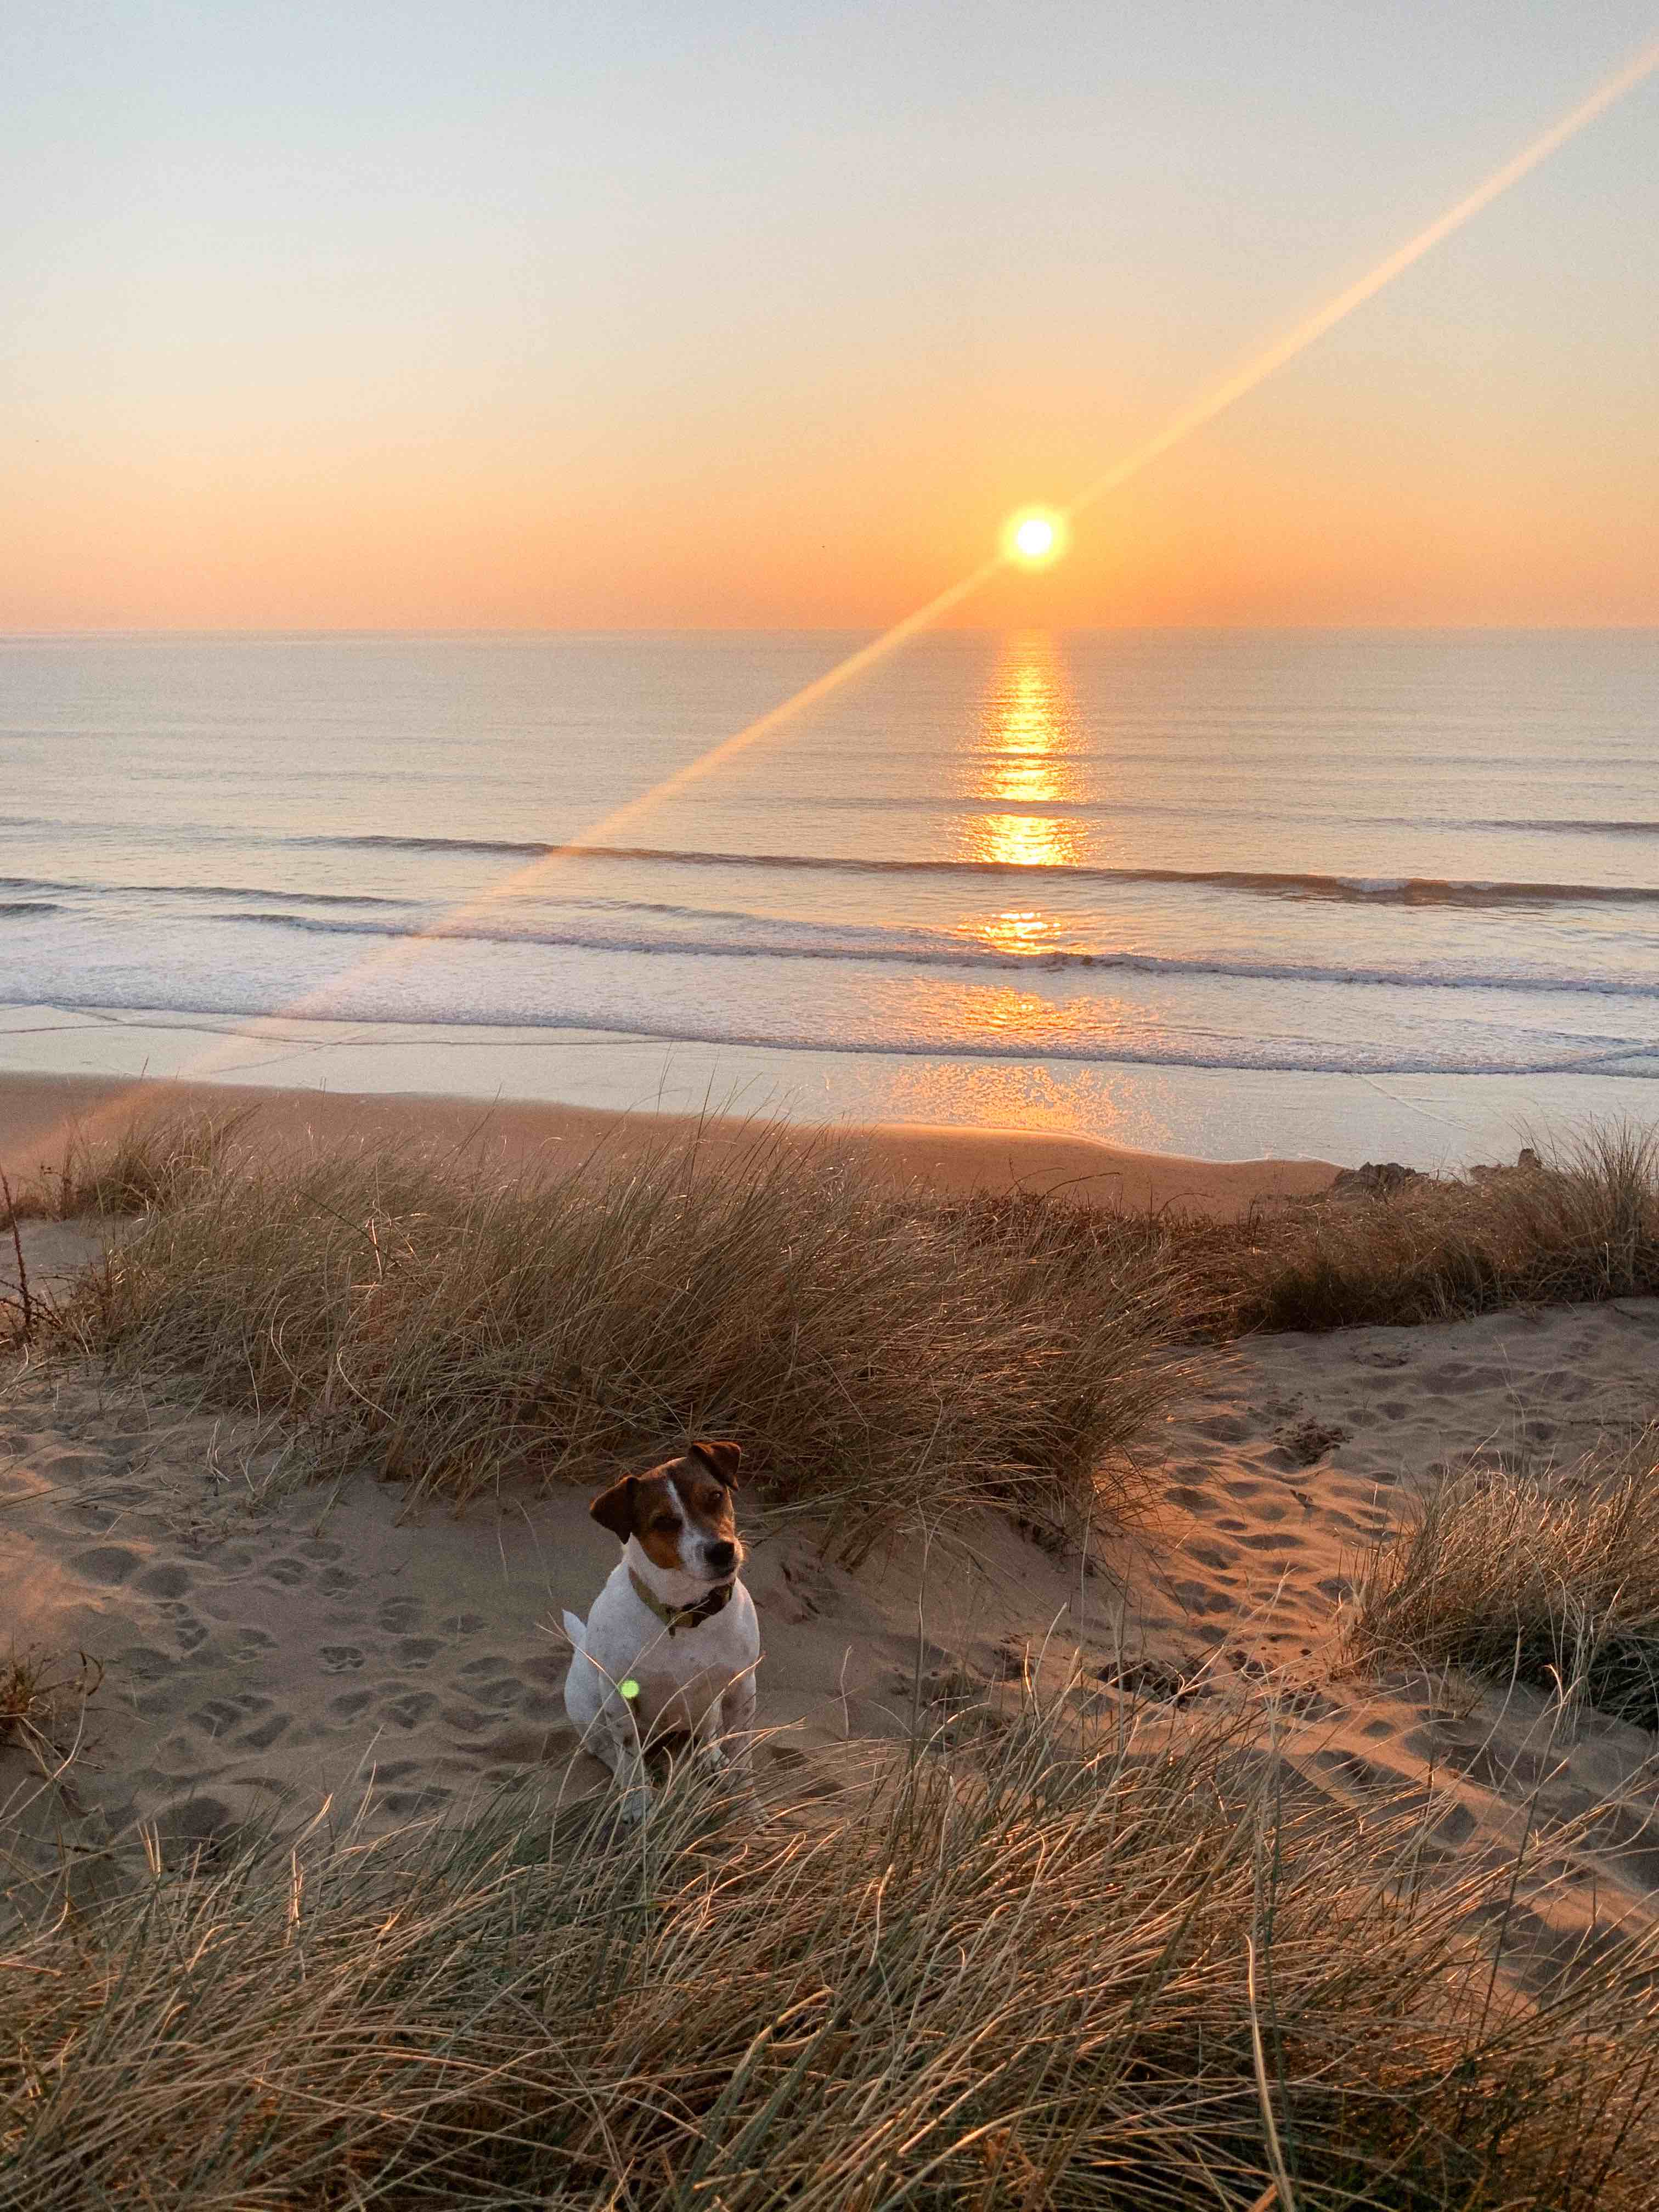 Jack Russel dog in sand dunes with sunset Woolacombe beach